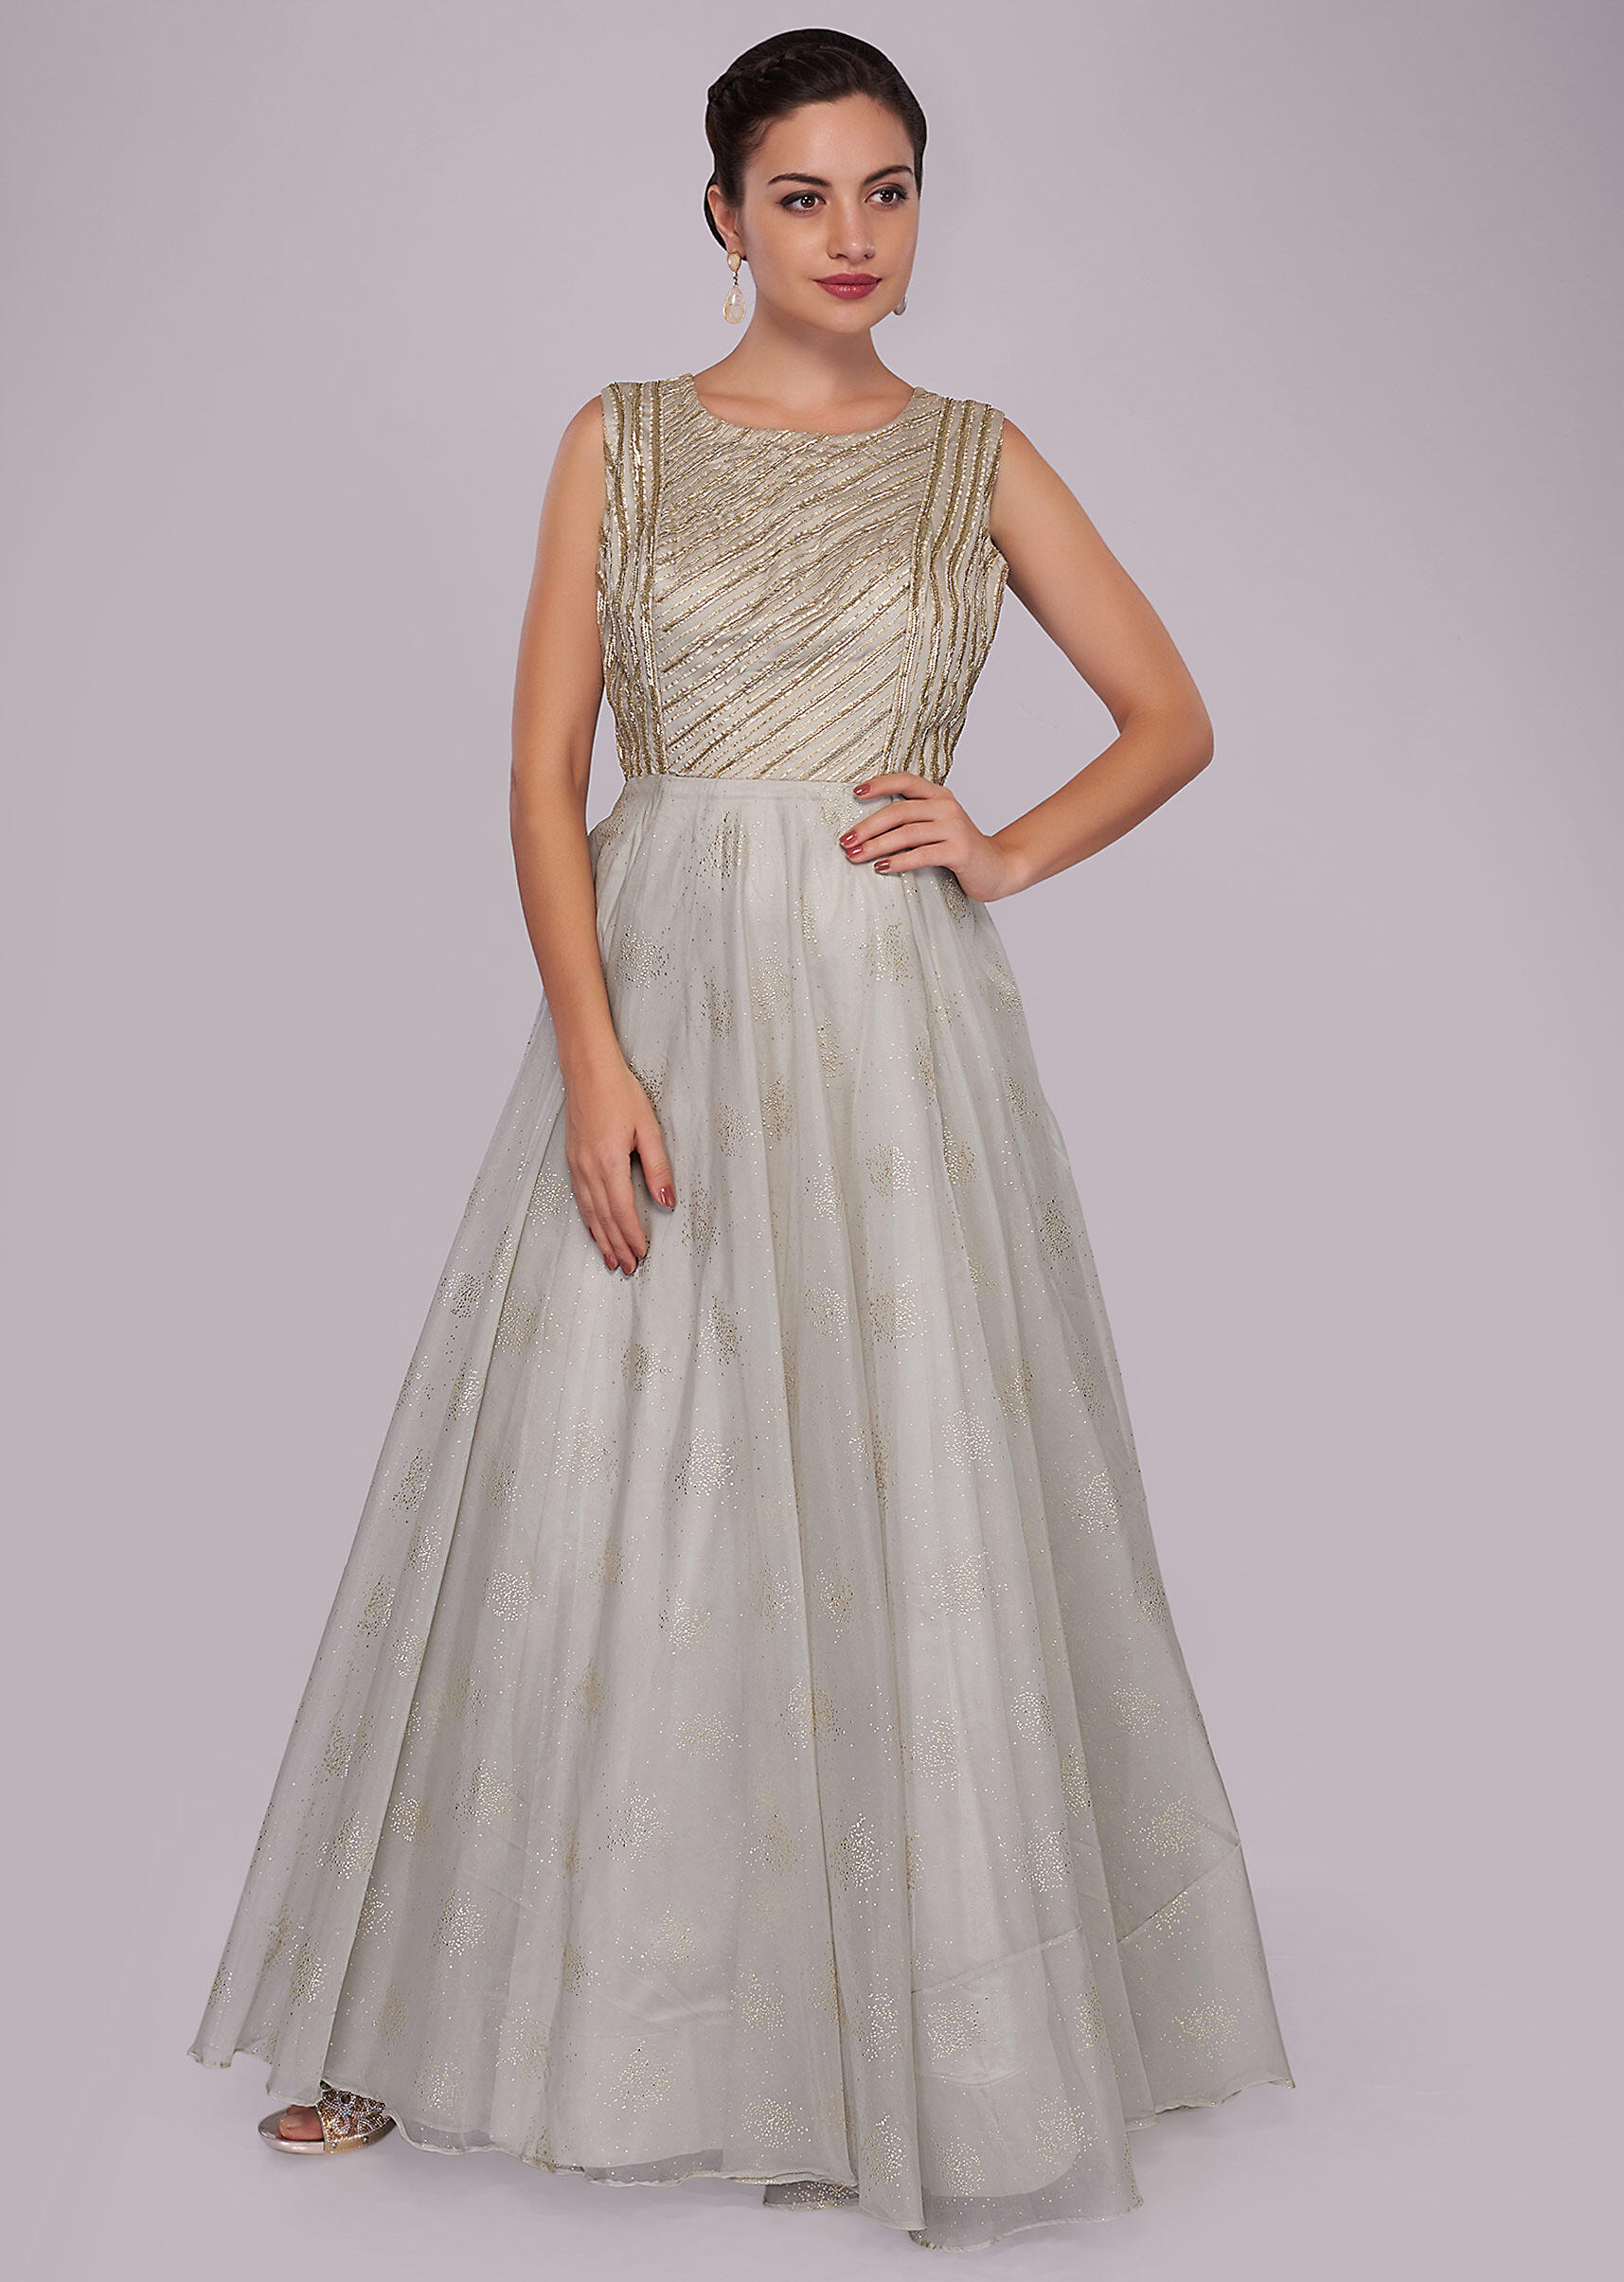 9f0d3112c3 Grey organza anarkali gown with embroidered bodice only on Kalki